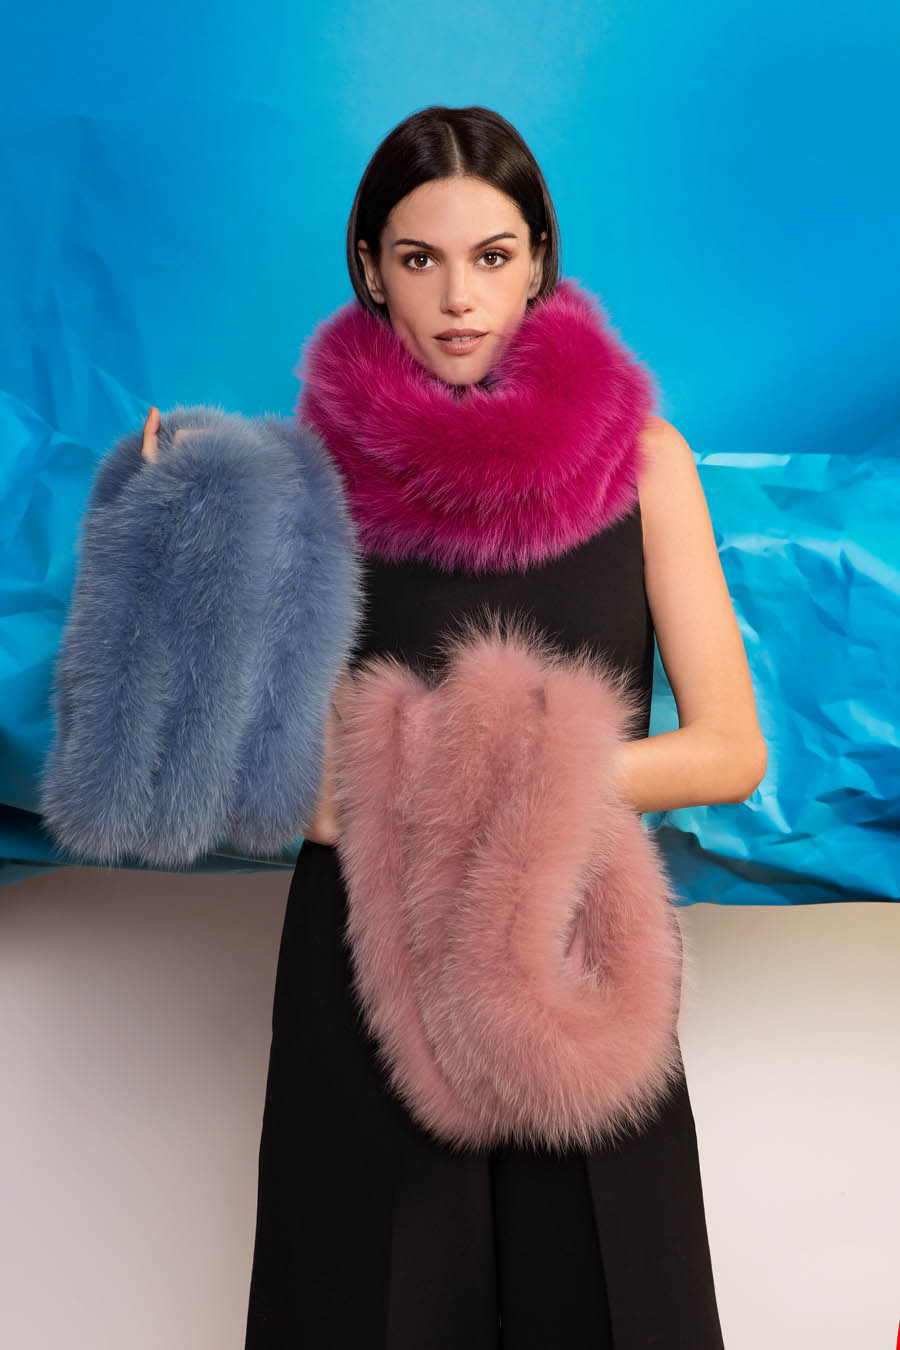 L422 01 giovi accessories fur - Fall Winter 2019-20